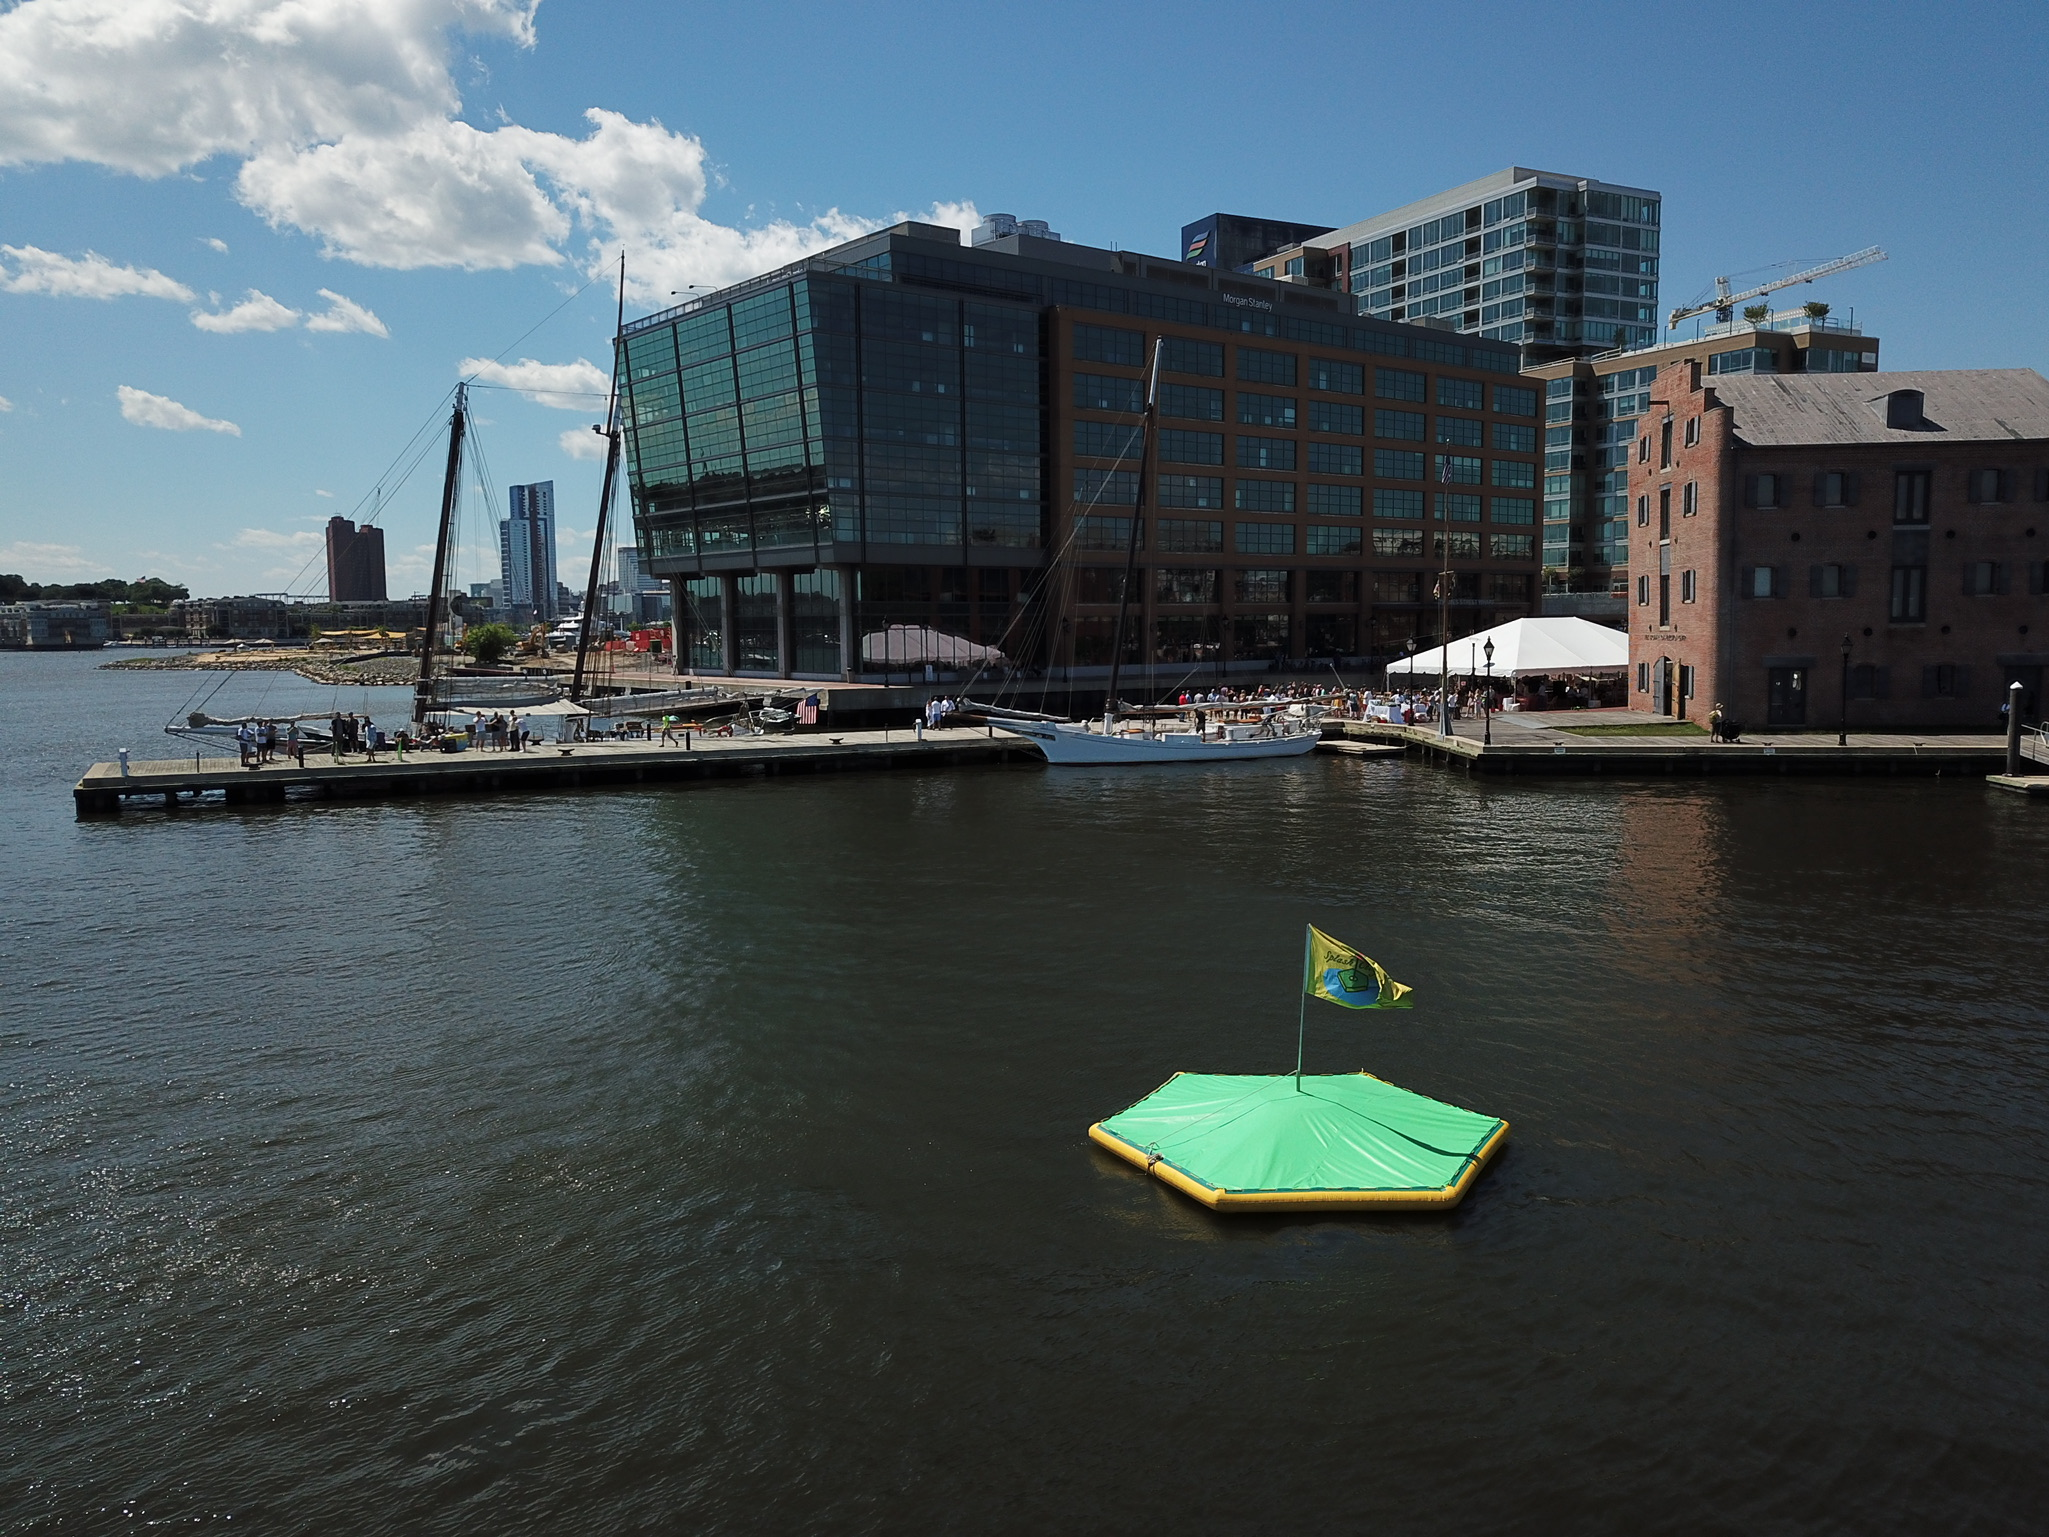 Hit biodegradable golf balls at a technology packed floating target at Frederick Douglass Maritime Park! Located in Fells Point, Maryland. Our waterfront driving ranges are great for corporate events, weddings, happy hours, and celebrations.